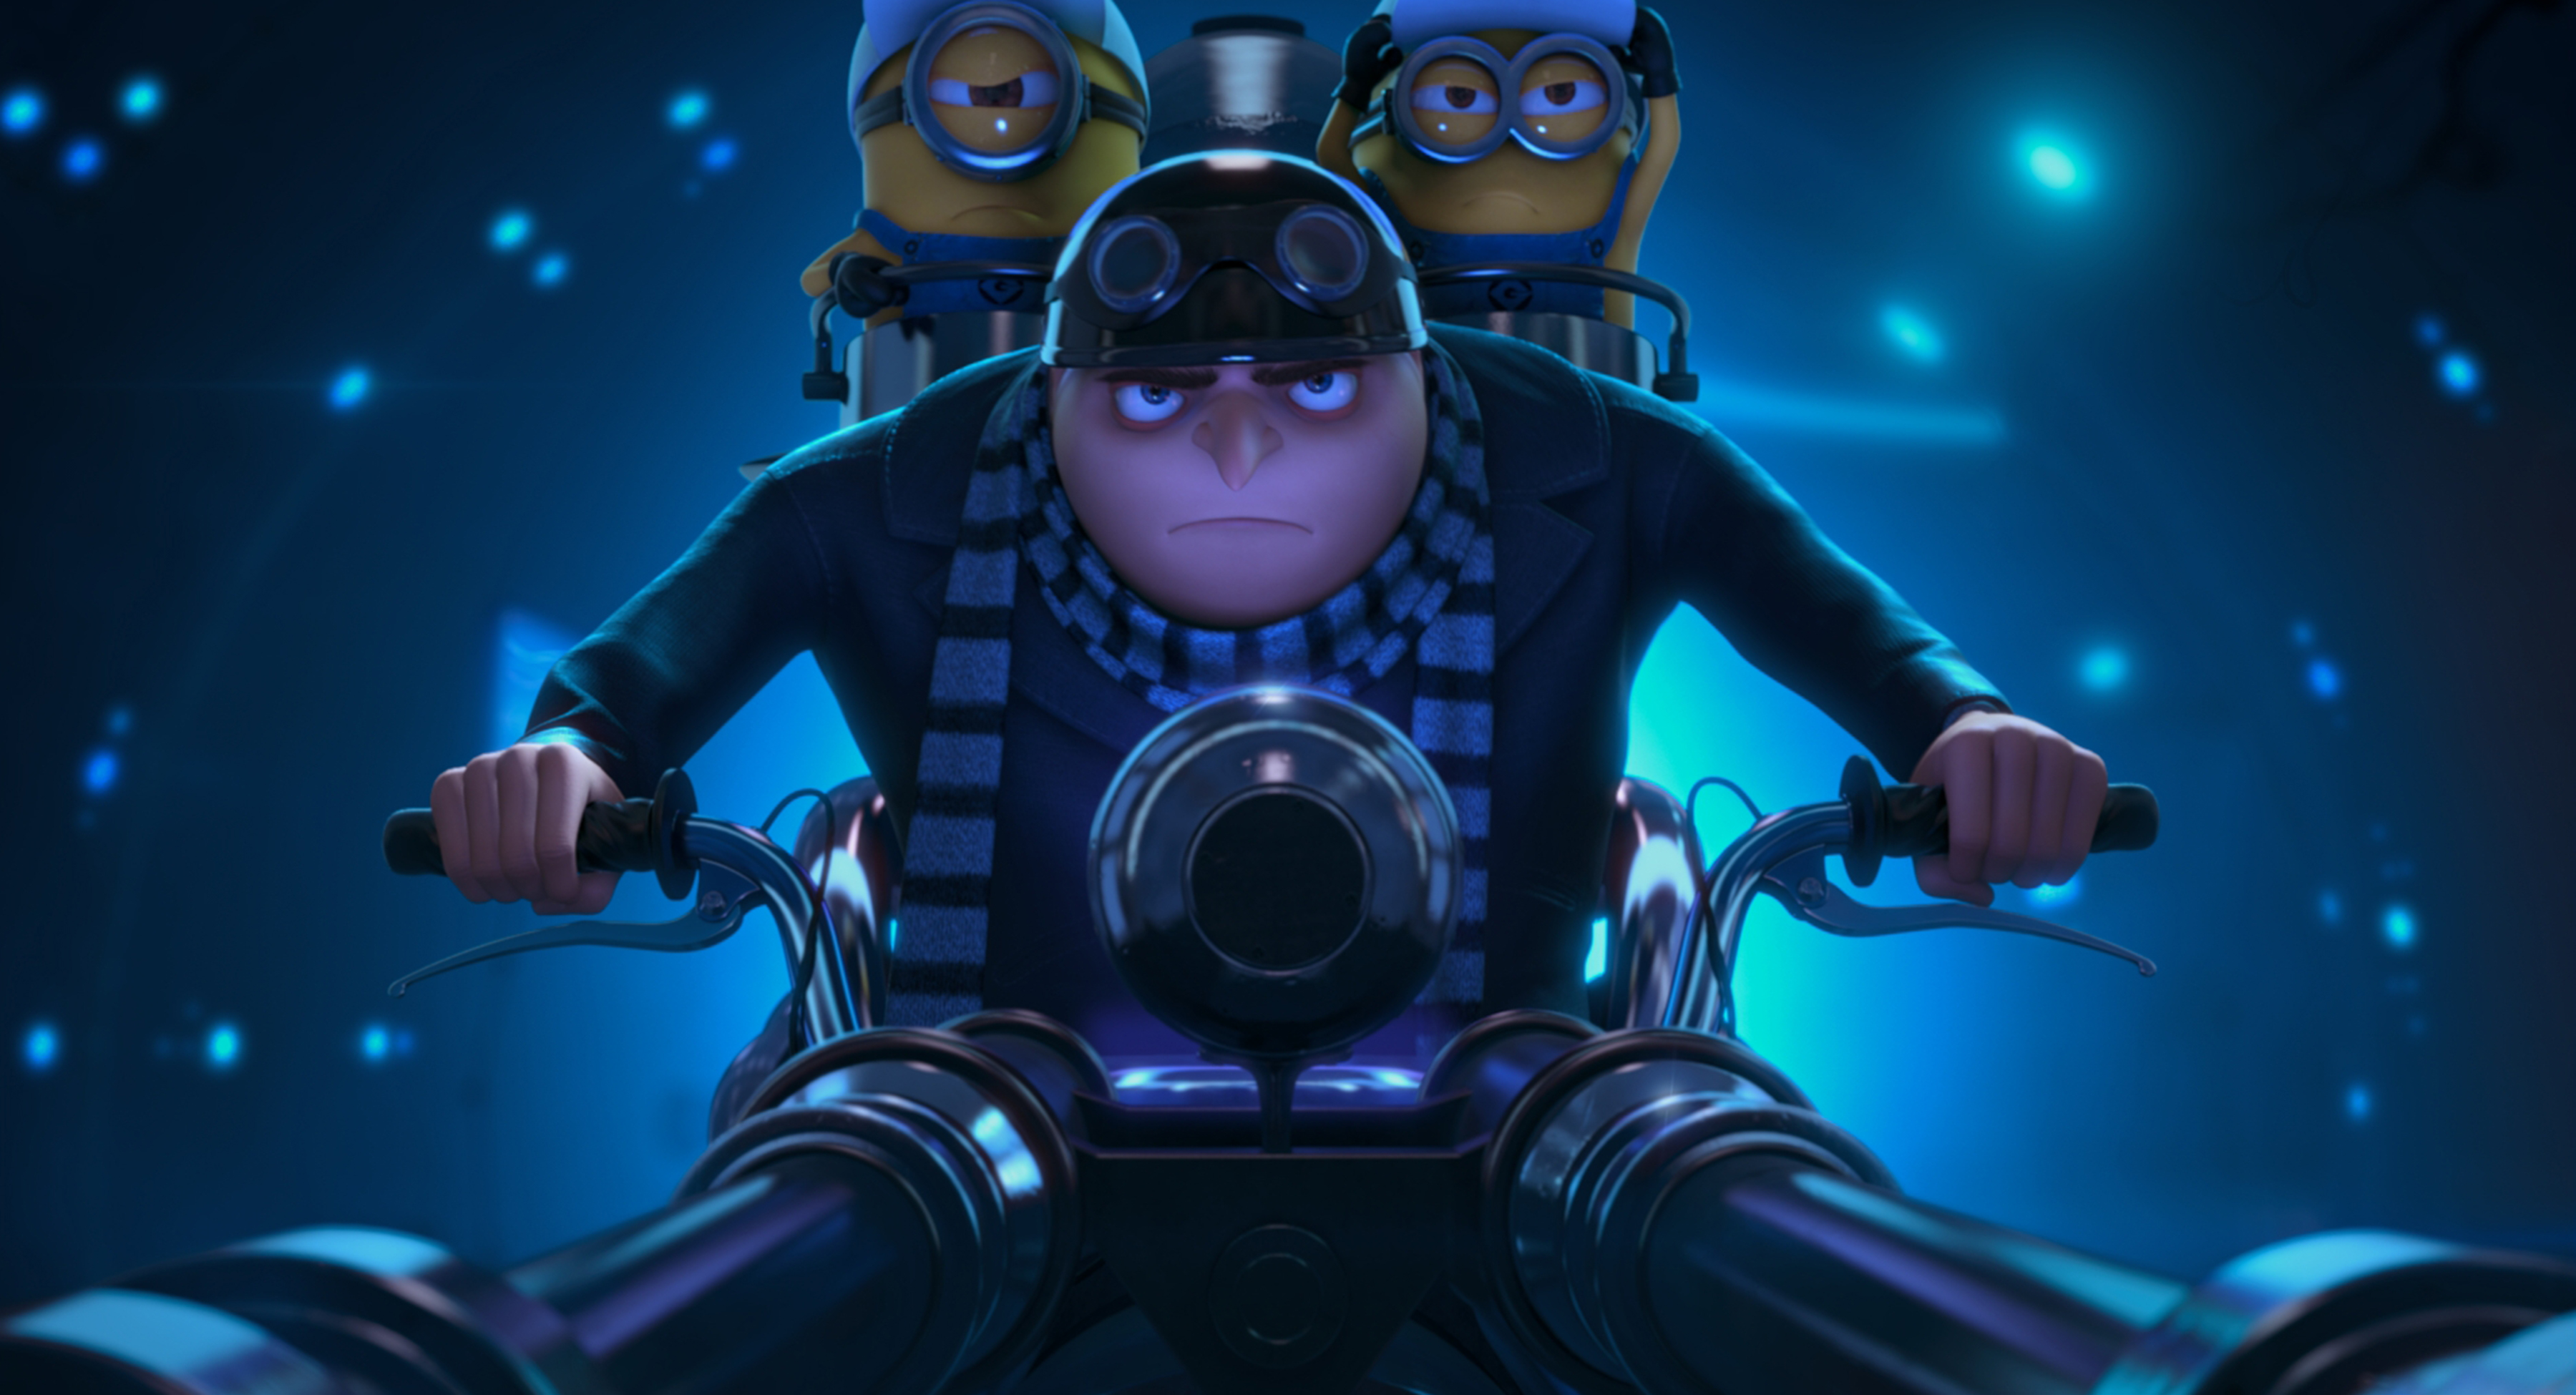 Despicable Me 2 Movie Images